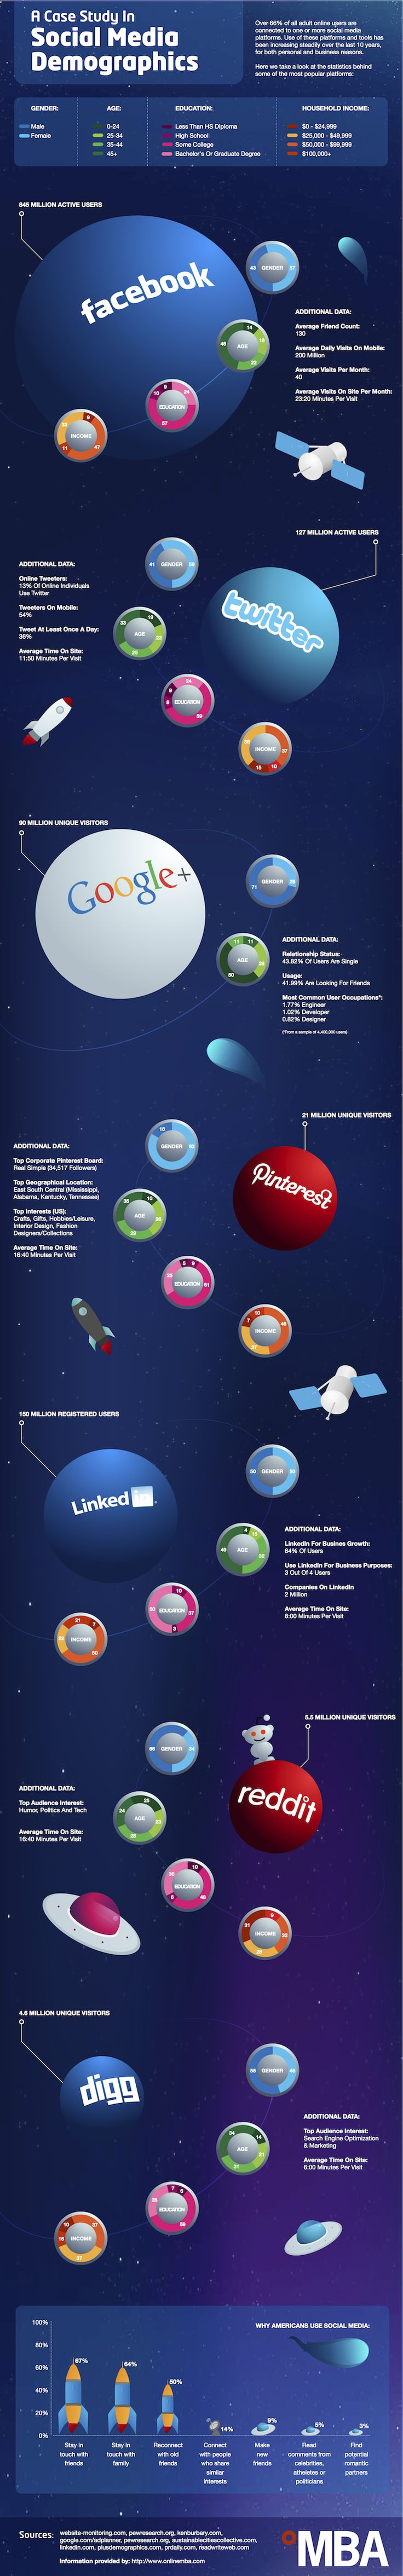 Social Outerspace: Social Network, Social Media Marketing, Socialnetwork, Web Design, Cases Study, Mediademograph, Infographic, Socialmedia, Media Demograph